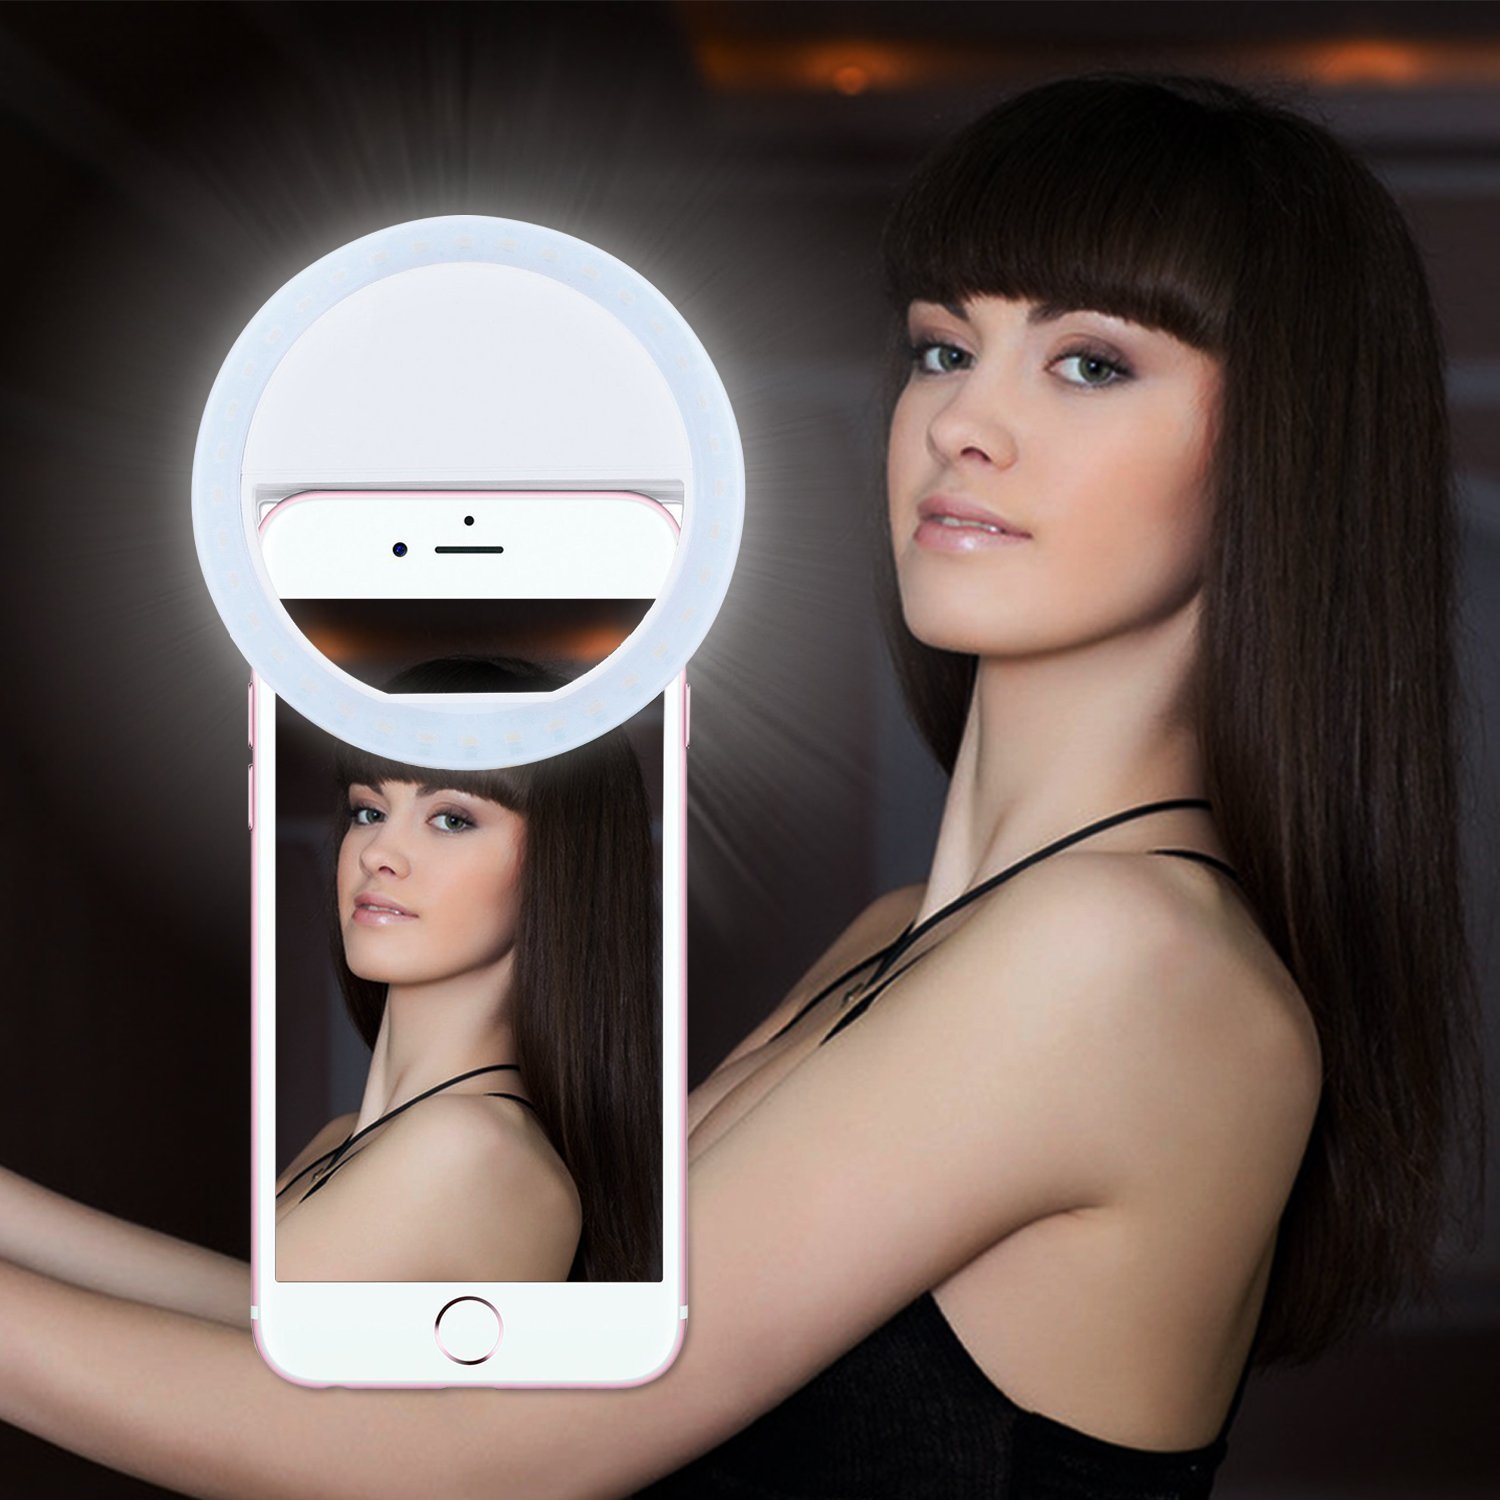 Selfie Light,Lavince Selfie Ring Light for iPhone 6 plus/6s/6/5s/5/4s,Samsung Galaxy S7 Edge/S7/S6 edge/S6/S5/S4/S3, Motorola and All the Smart Phones with 36 Self LED Lighting(White)